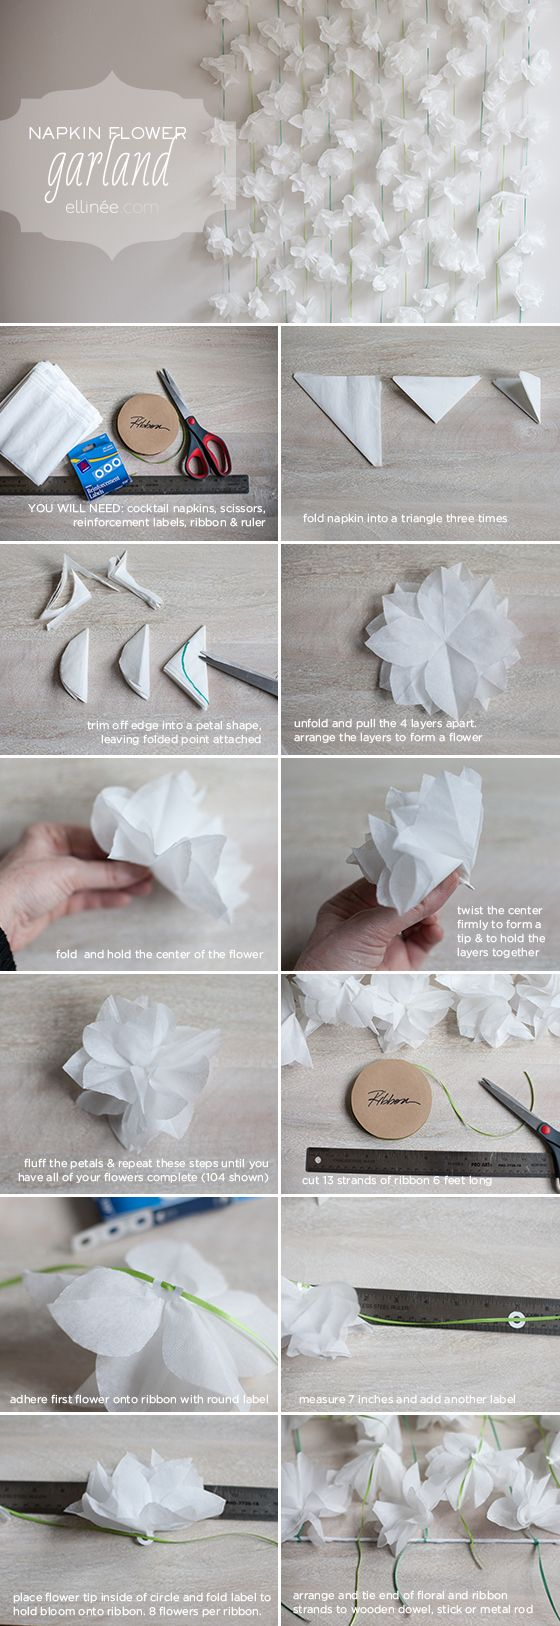 DIY Paper Napkin Flower Garland   Tutorial -this is kinda like the tissue flowers we made back in the day for the wedding cars! haha